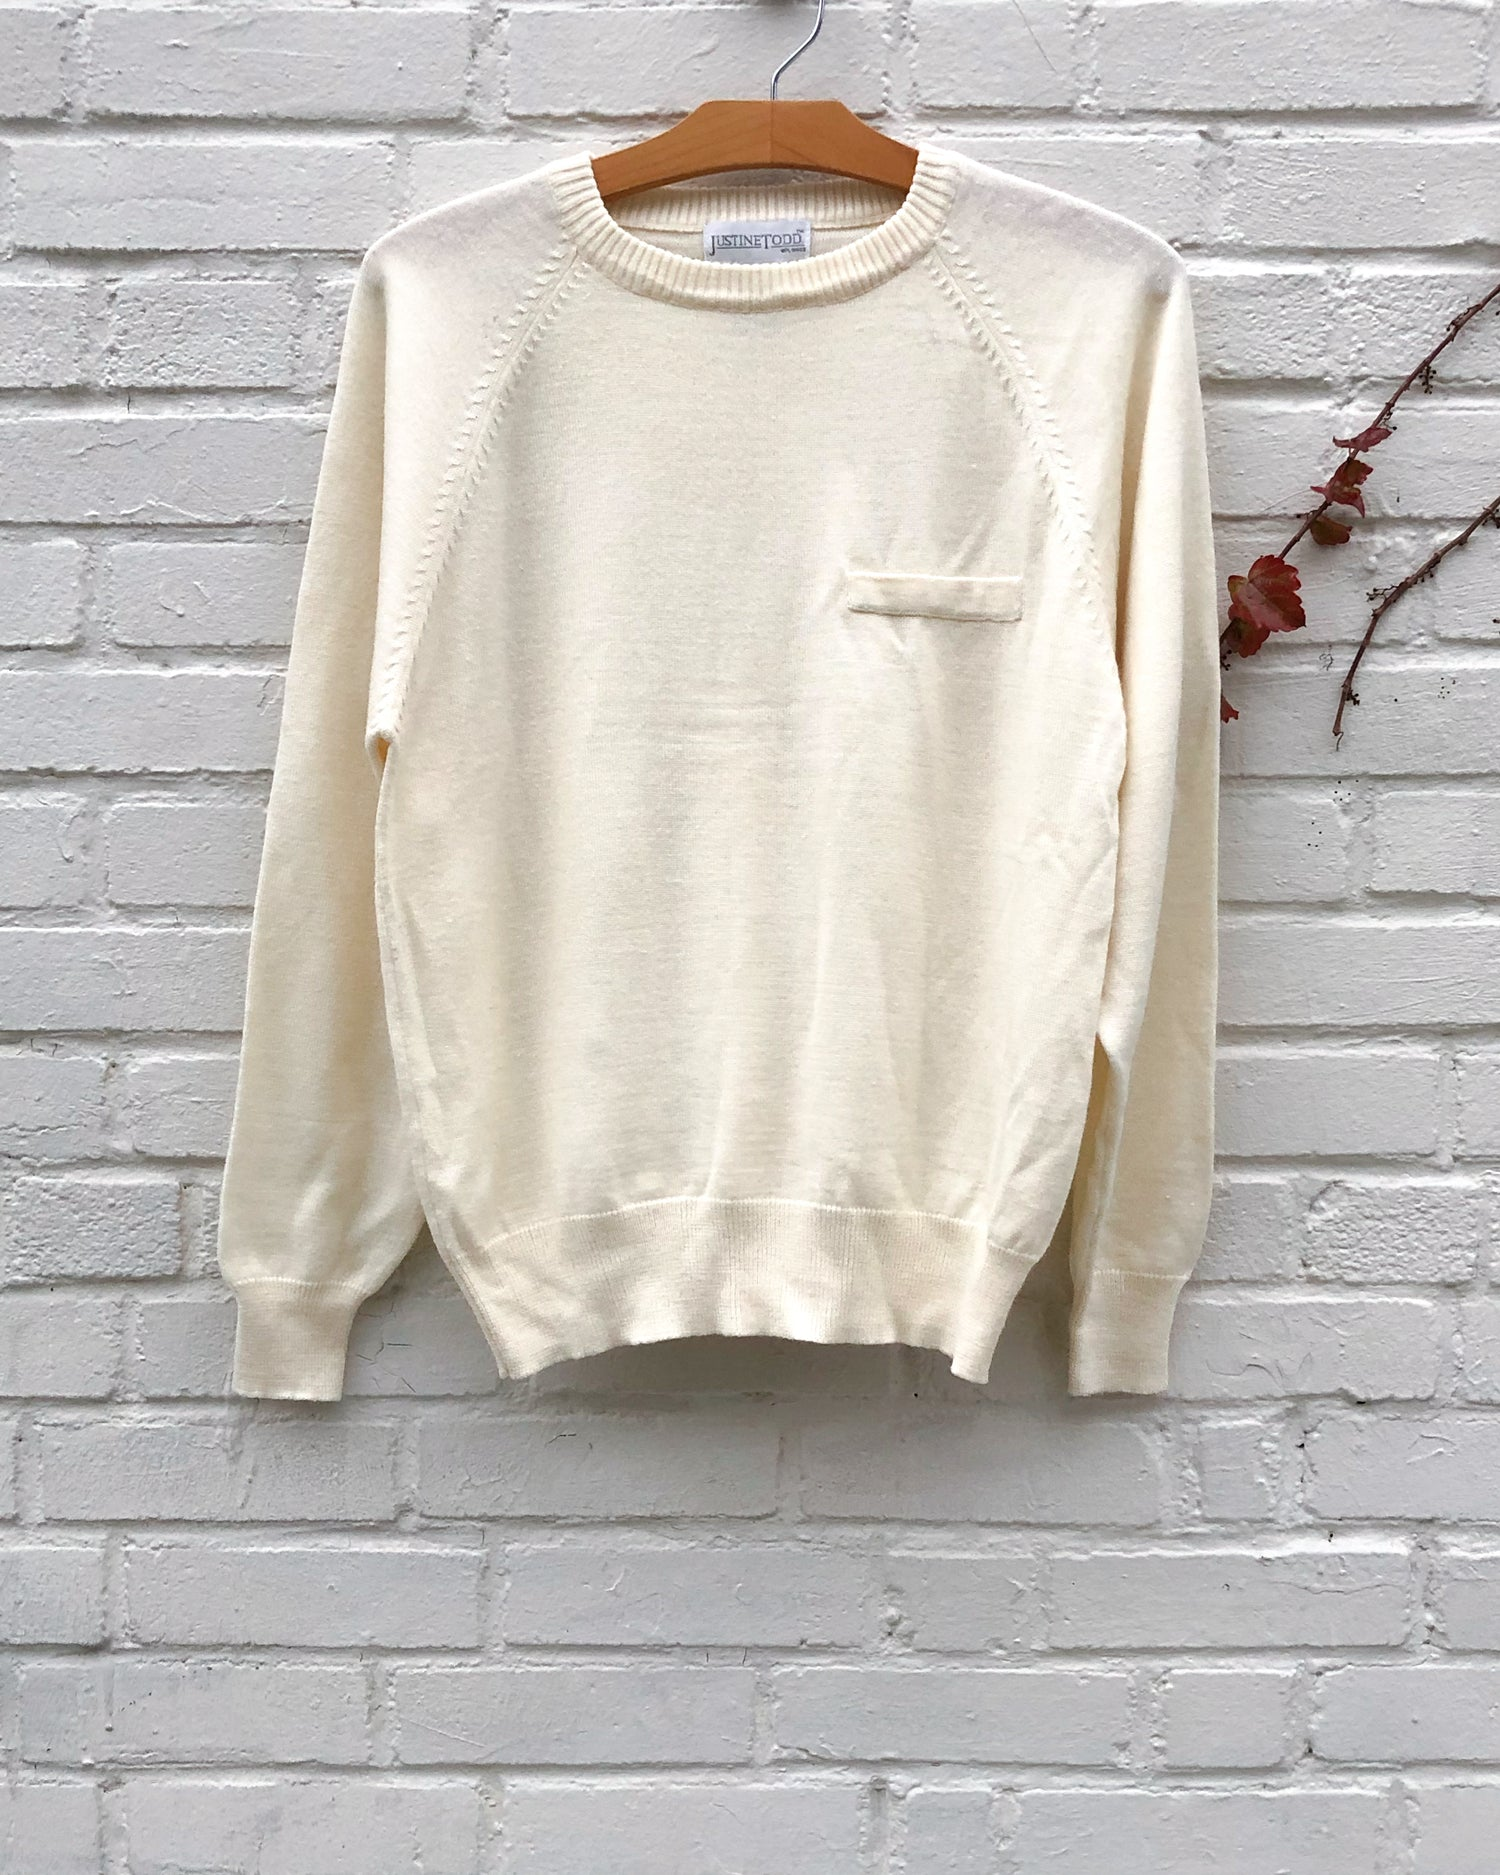 70s Classic Cream Sweater with Pocket